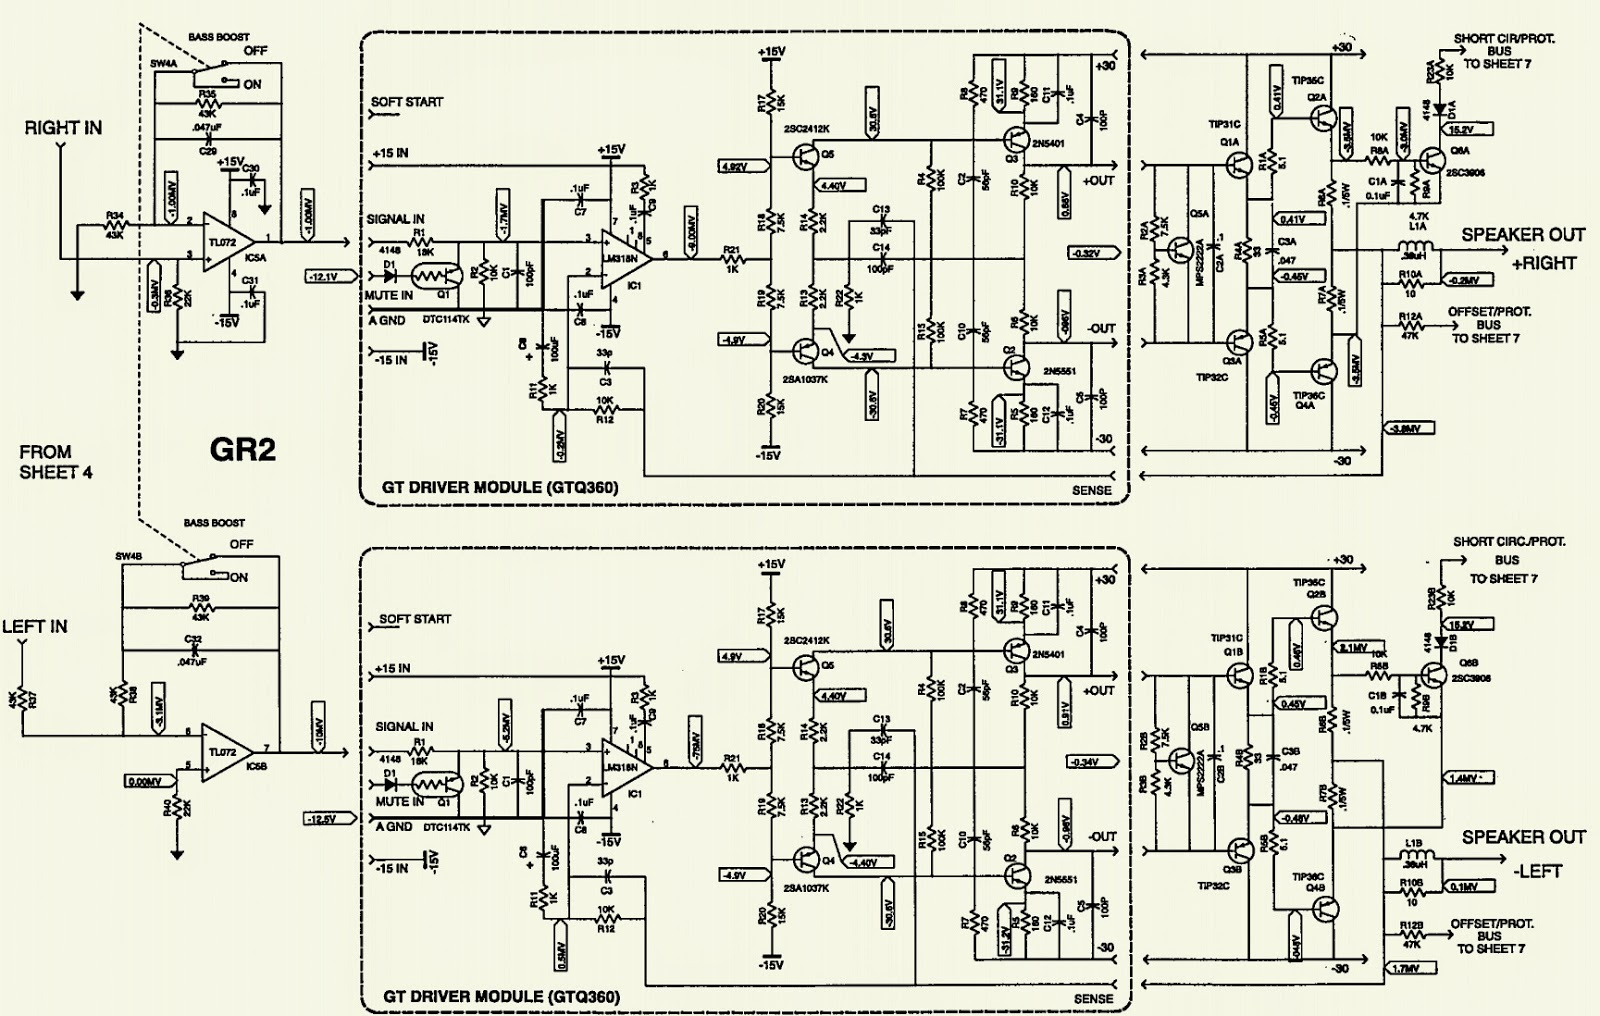 Car Crossover Wiring Diagram 2002 Yamaha 350 Warrior Dbx House Speakers Wire